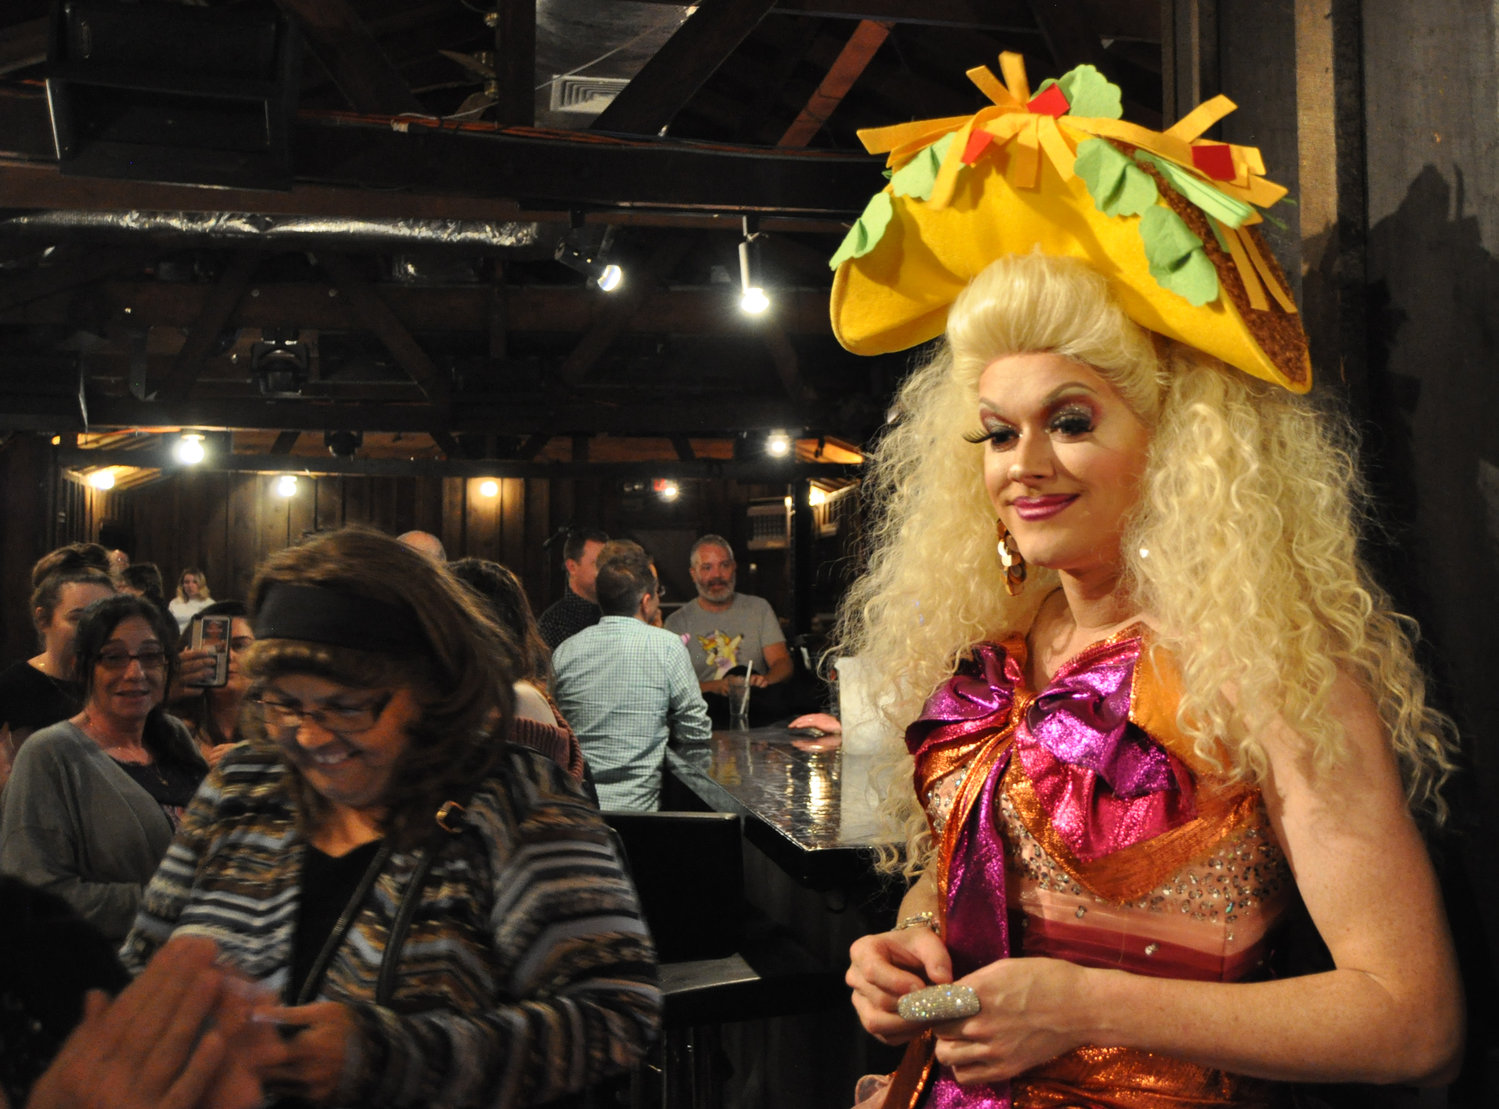 Larger-than-life drag performer Paige Turner held the audience in the palm of her man-sized hands last weekend at the Forestburgh Tavern. I don't remember why she had a giant taco on her head.